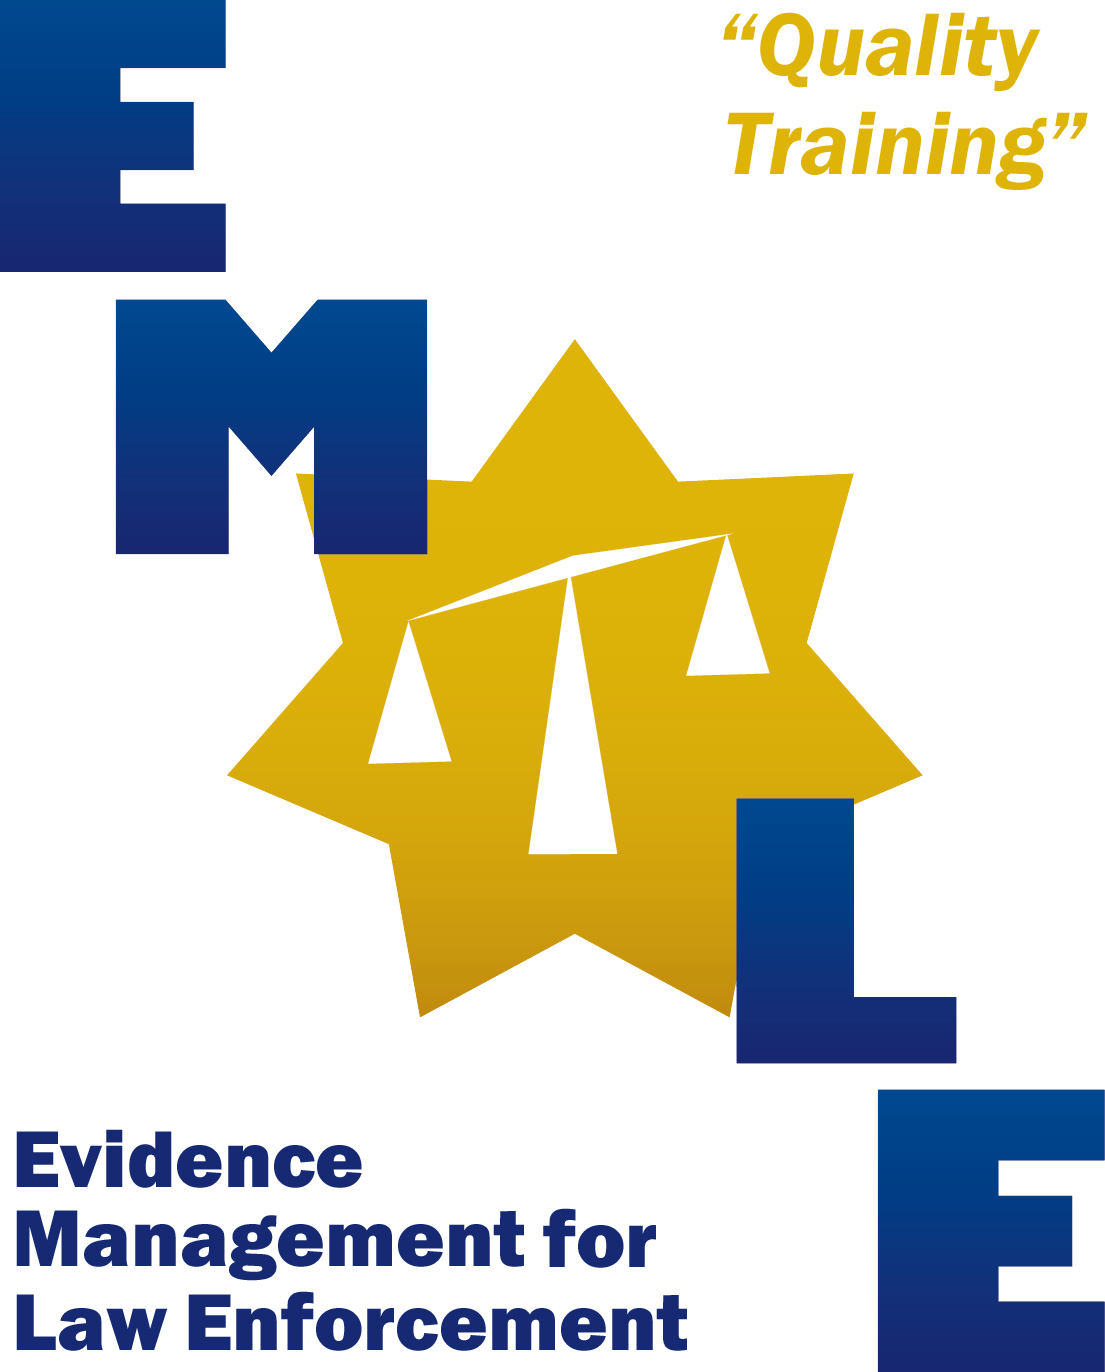 Evidence Management for Law Enforcement